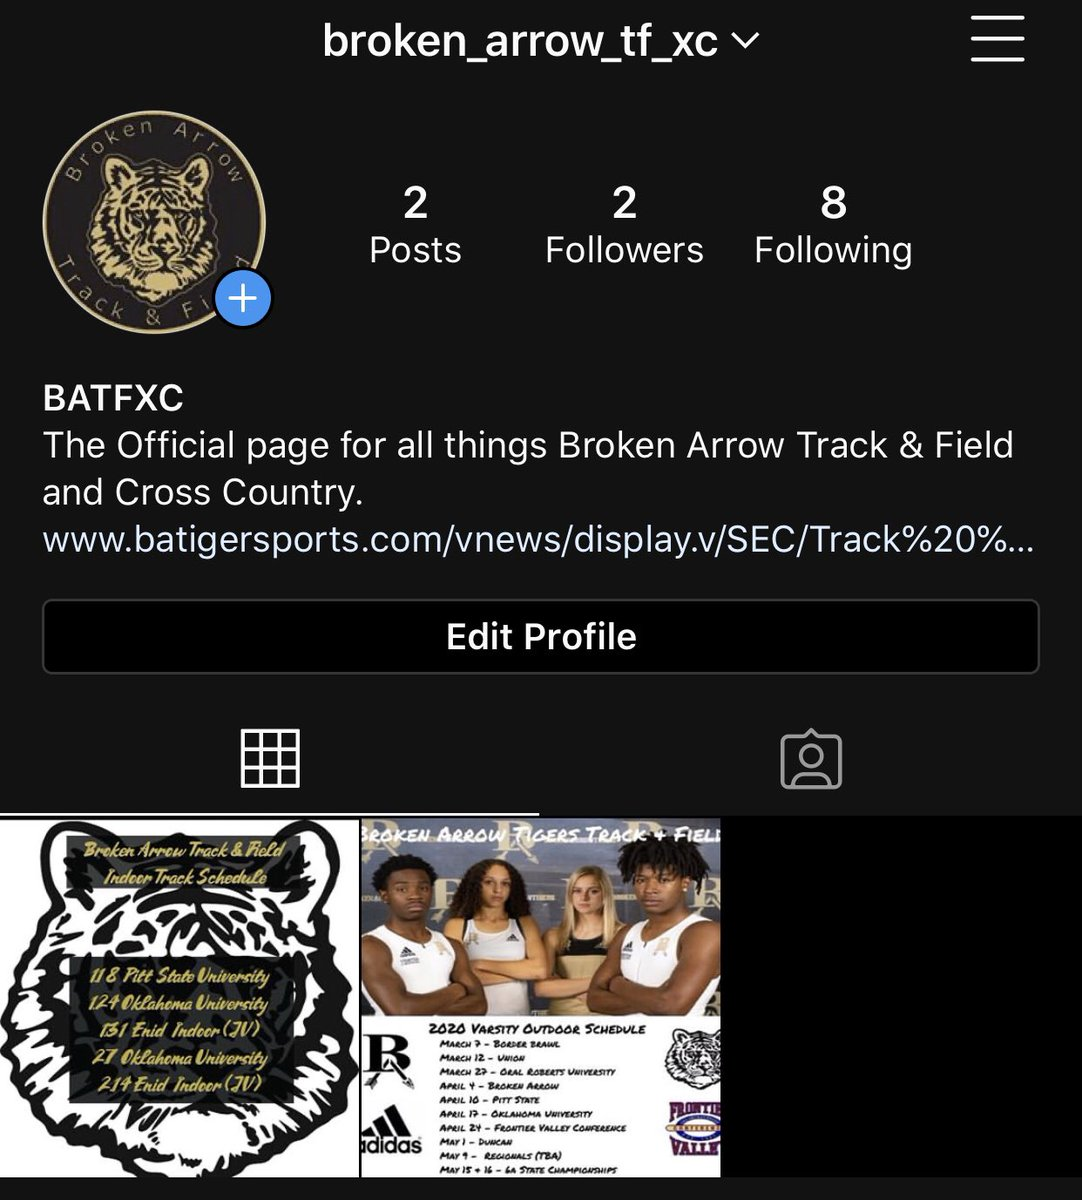 Be sure to follow the new IG page for more updates and action shots from the meets/races!